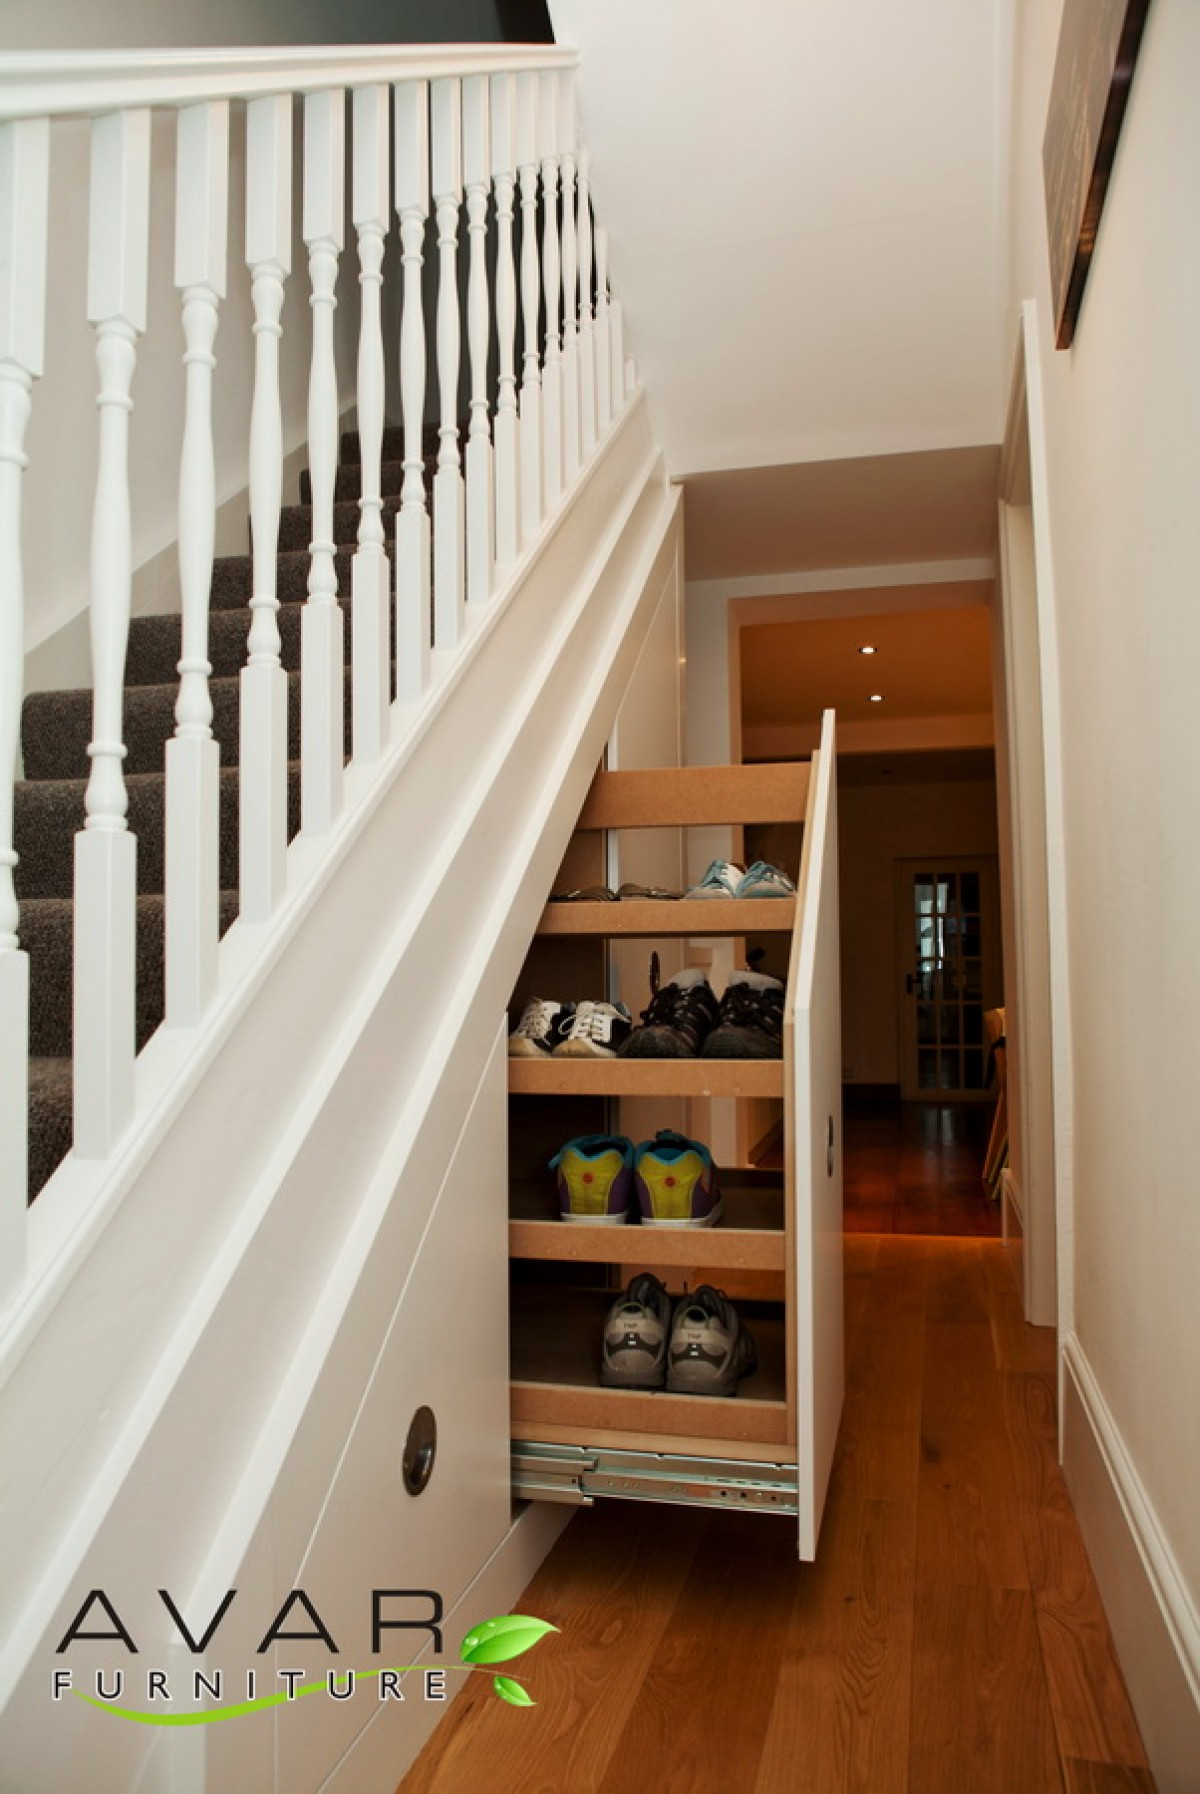 Under Stairs Storage Ideas Gallery 10 North London UK Avar Furniture